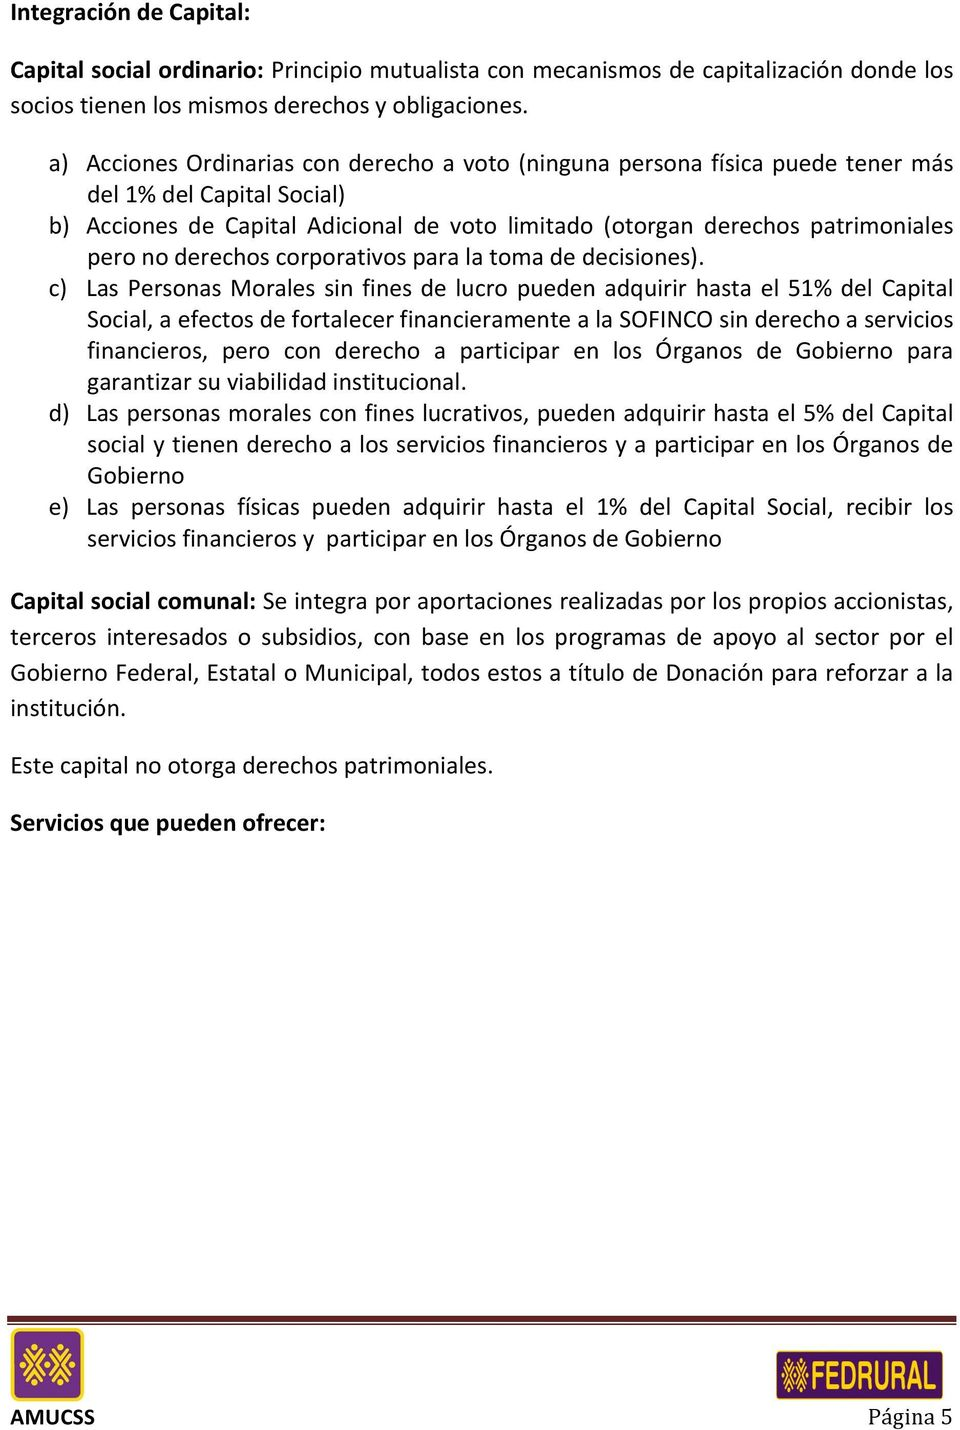 derechos corporativos para la toma de decisiones).